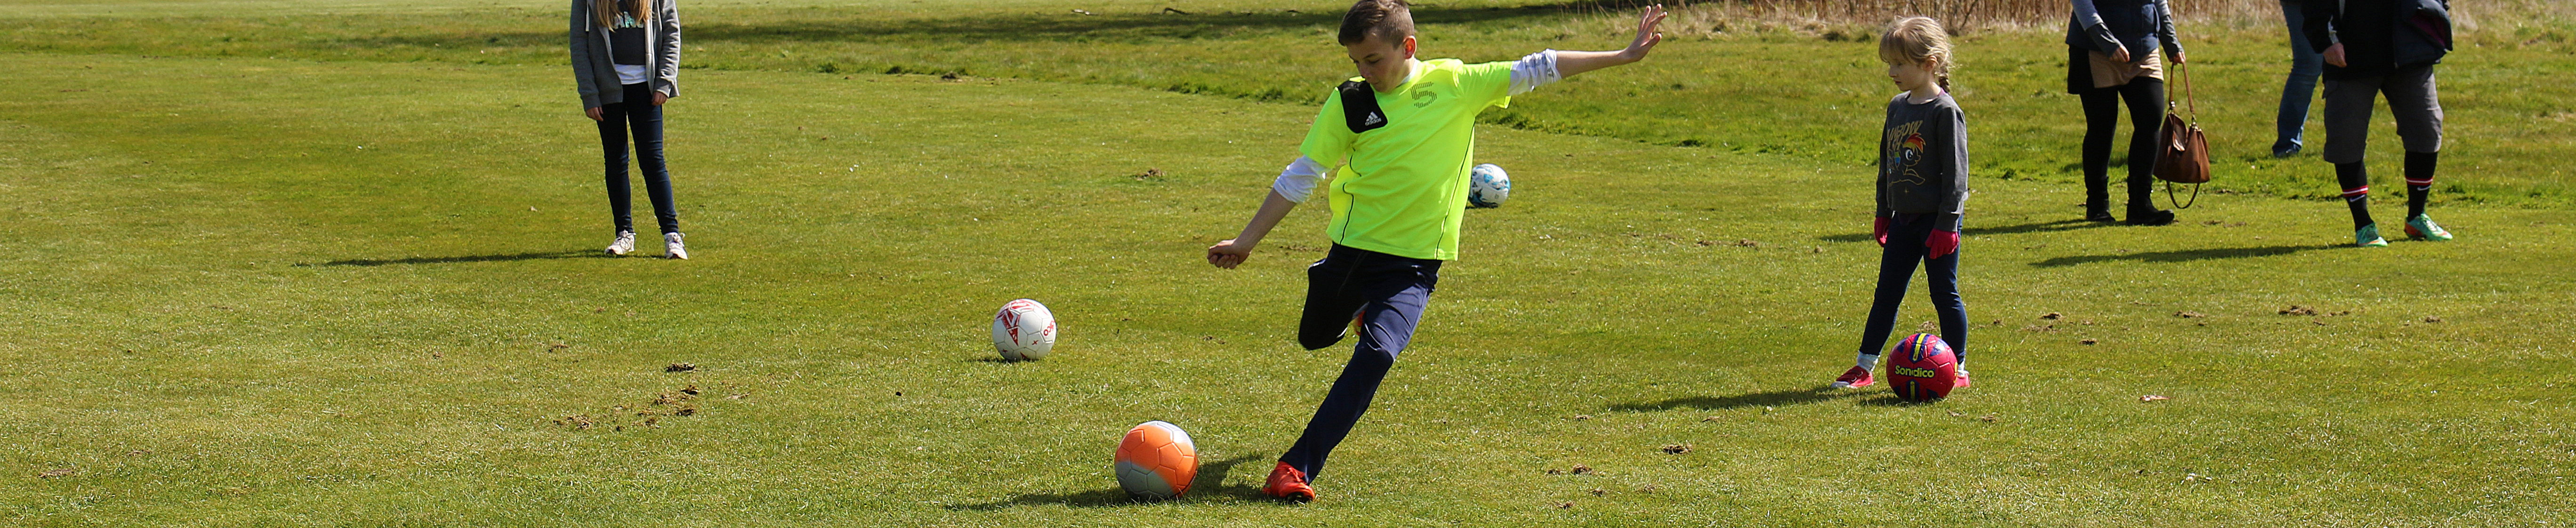 FootGolf at Little Hay